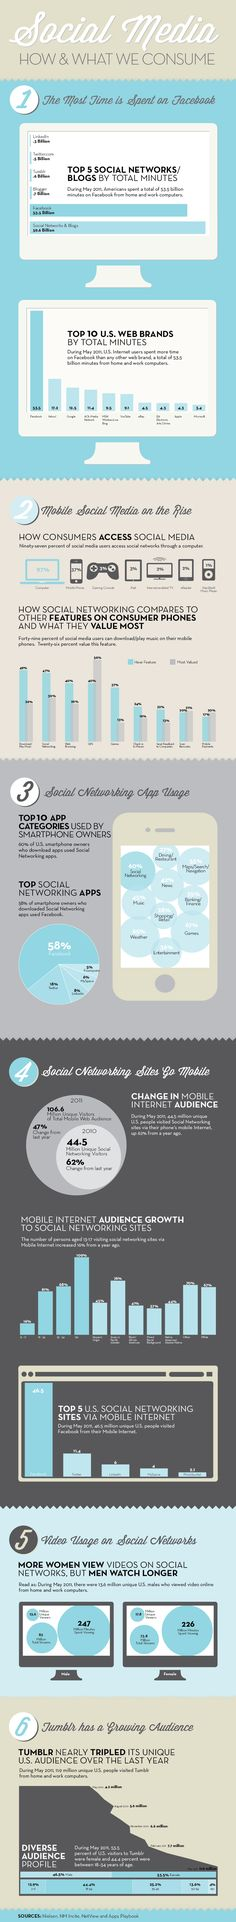 Megan Hillman, Social Media: How & What We Consume #infographic #social media